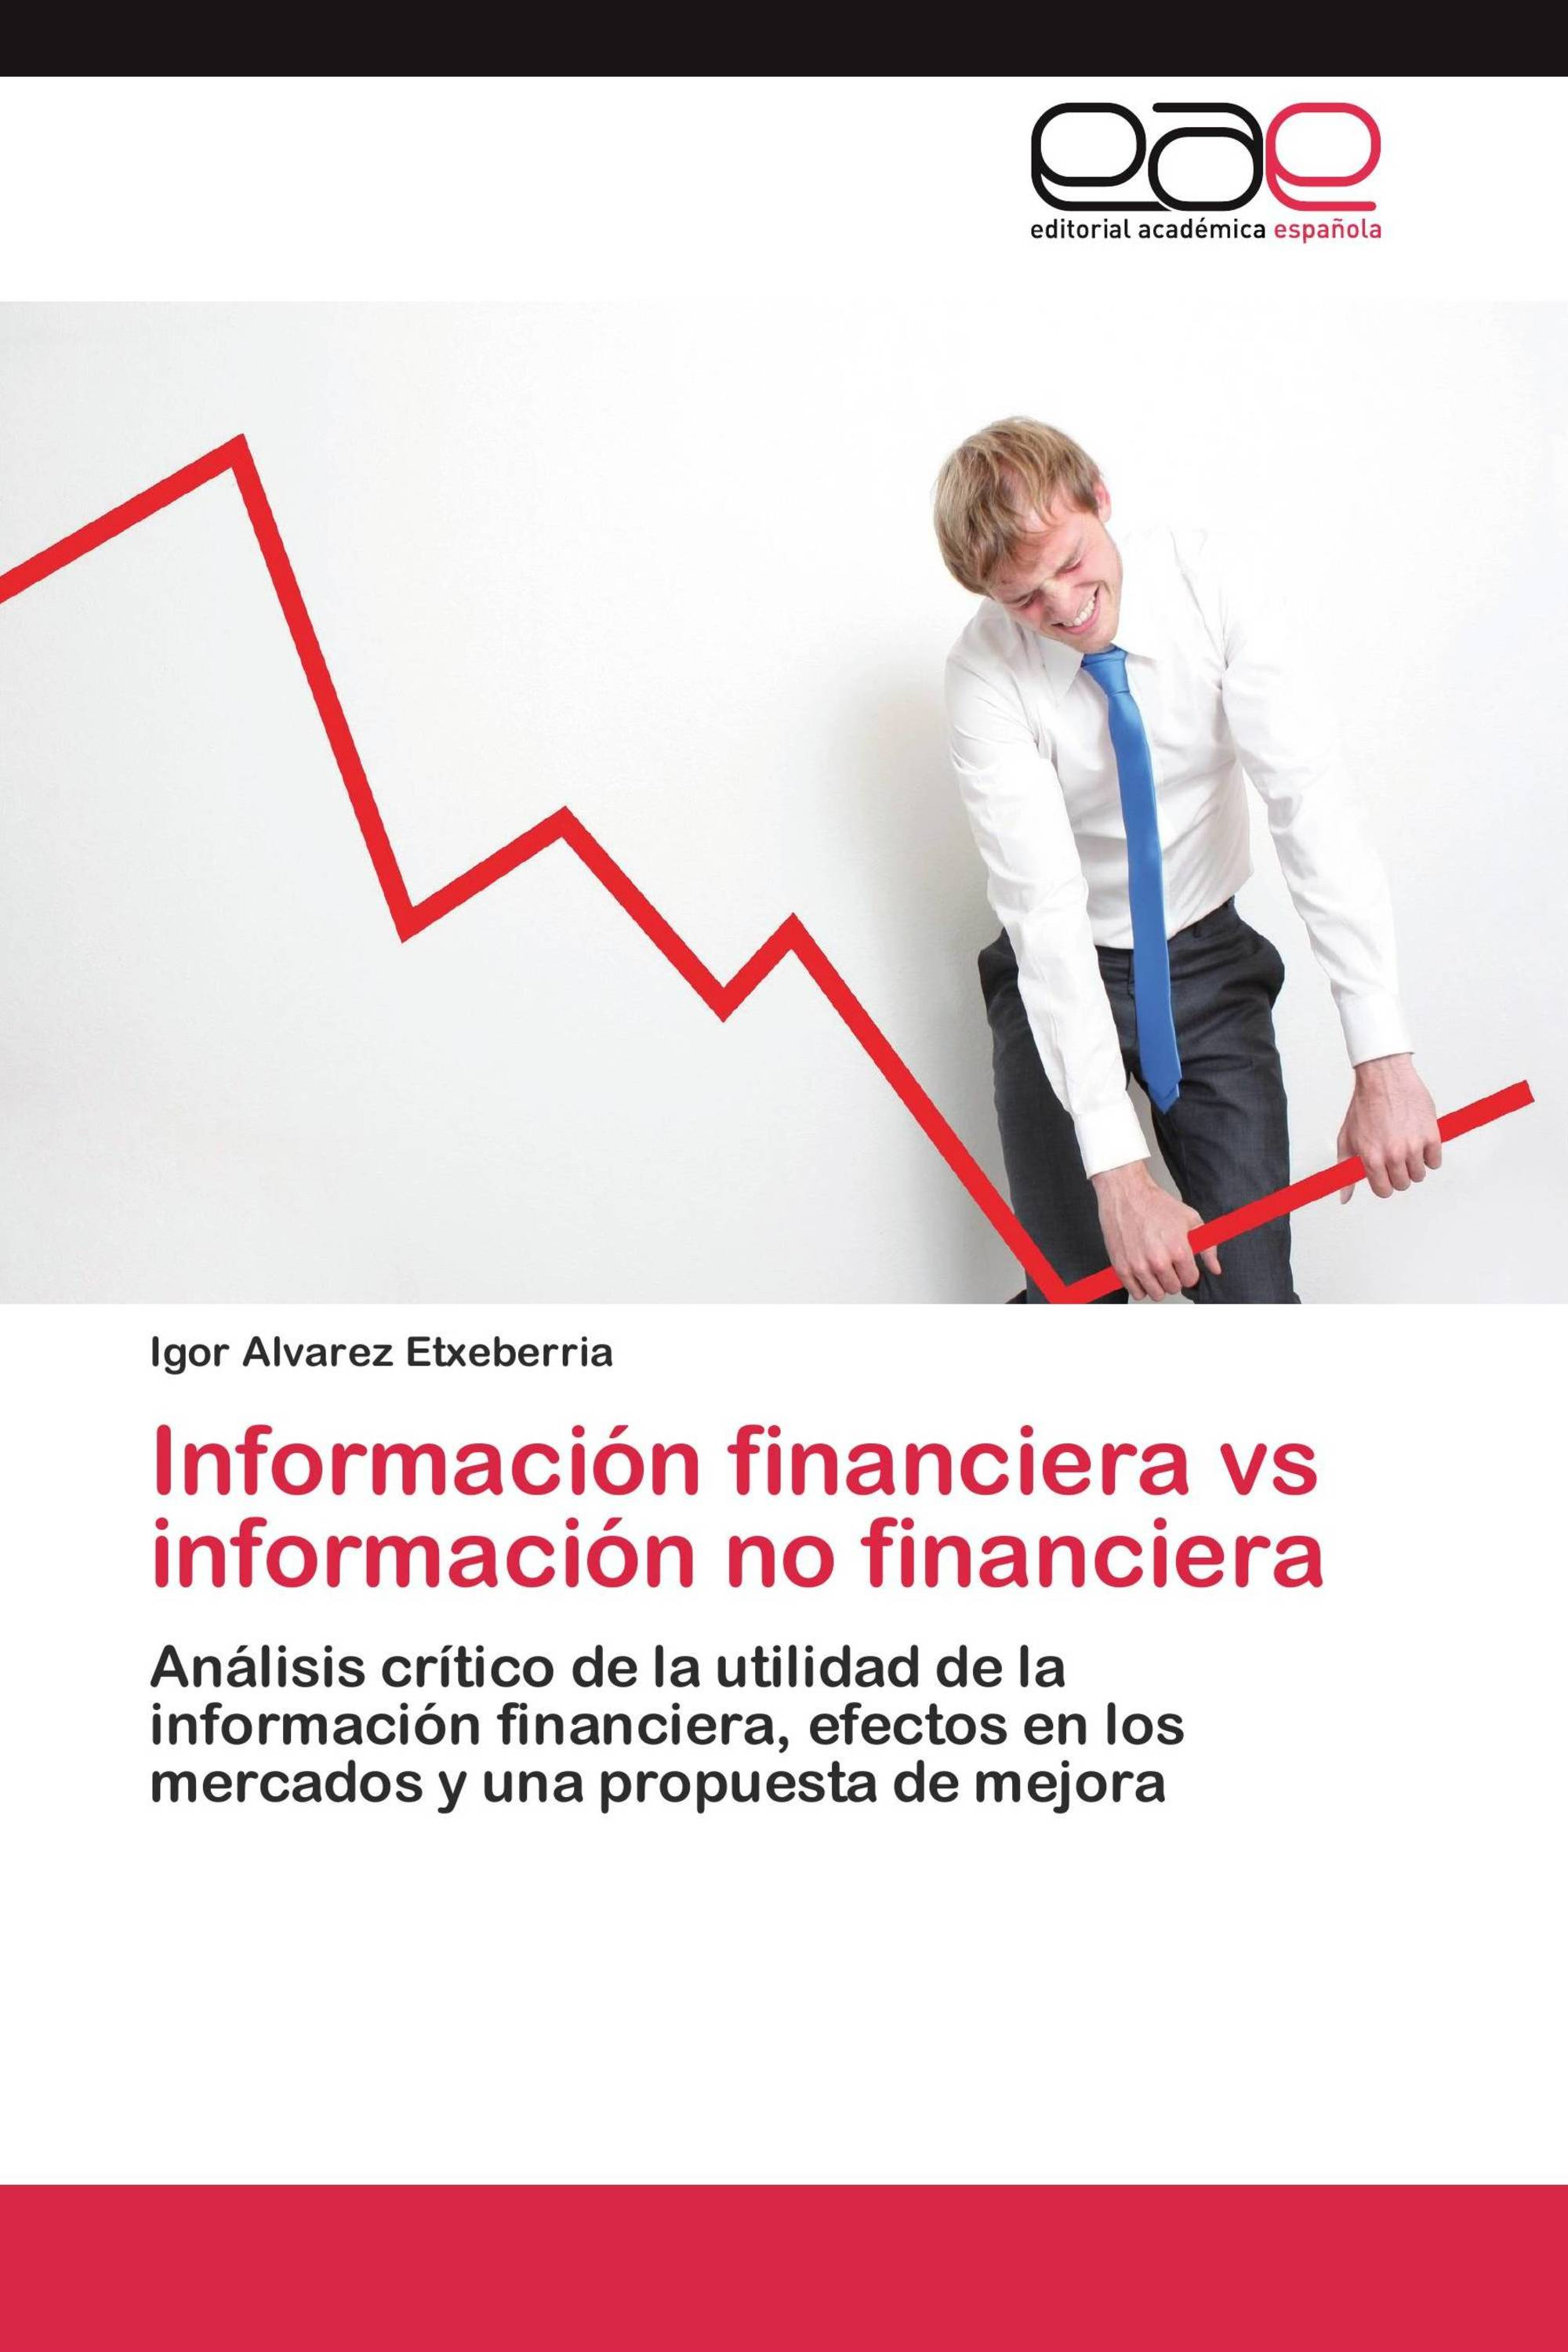 Información financiera vs información no financiera